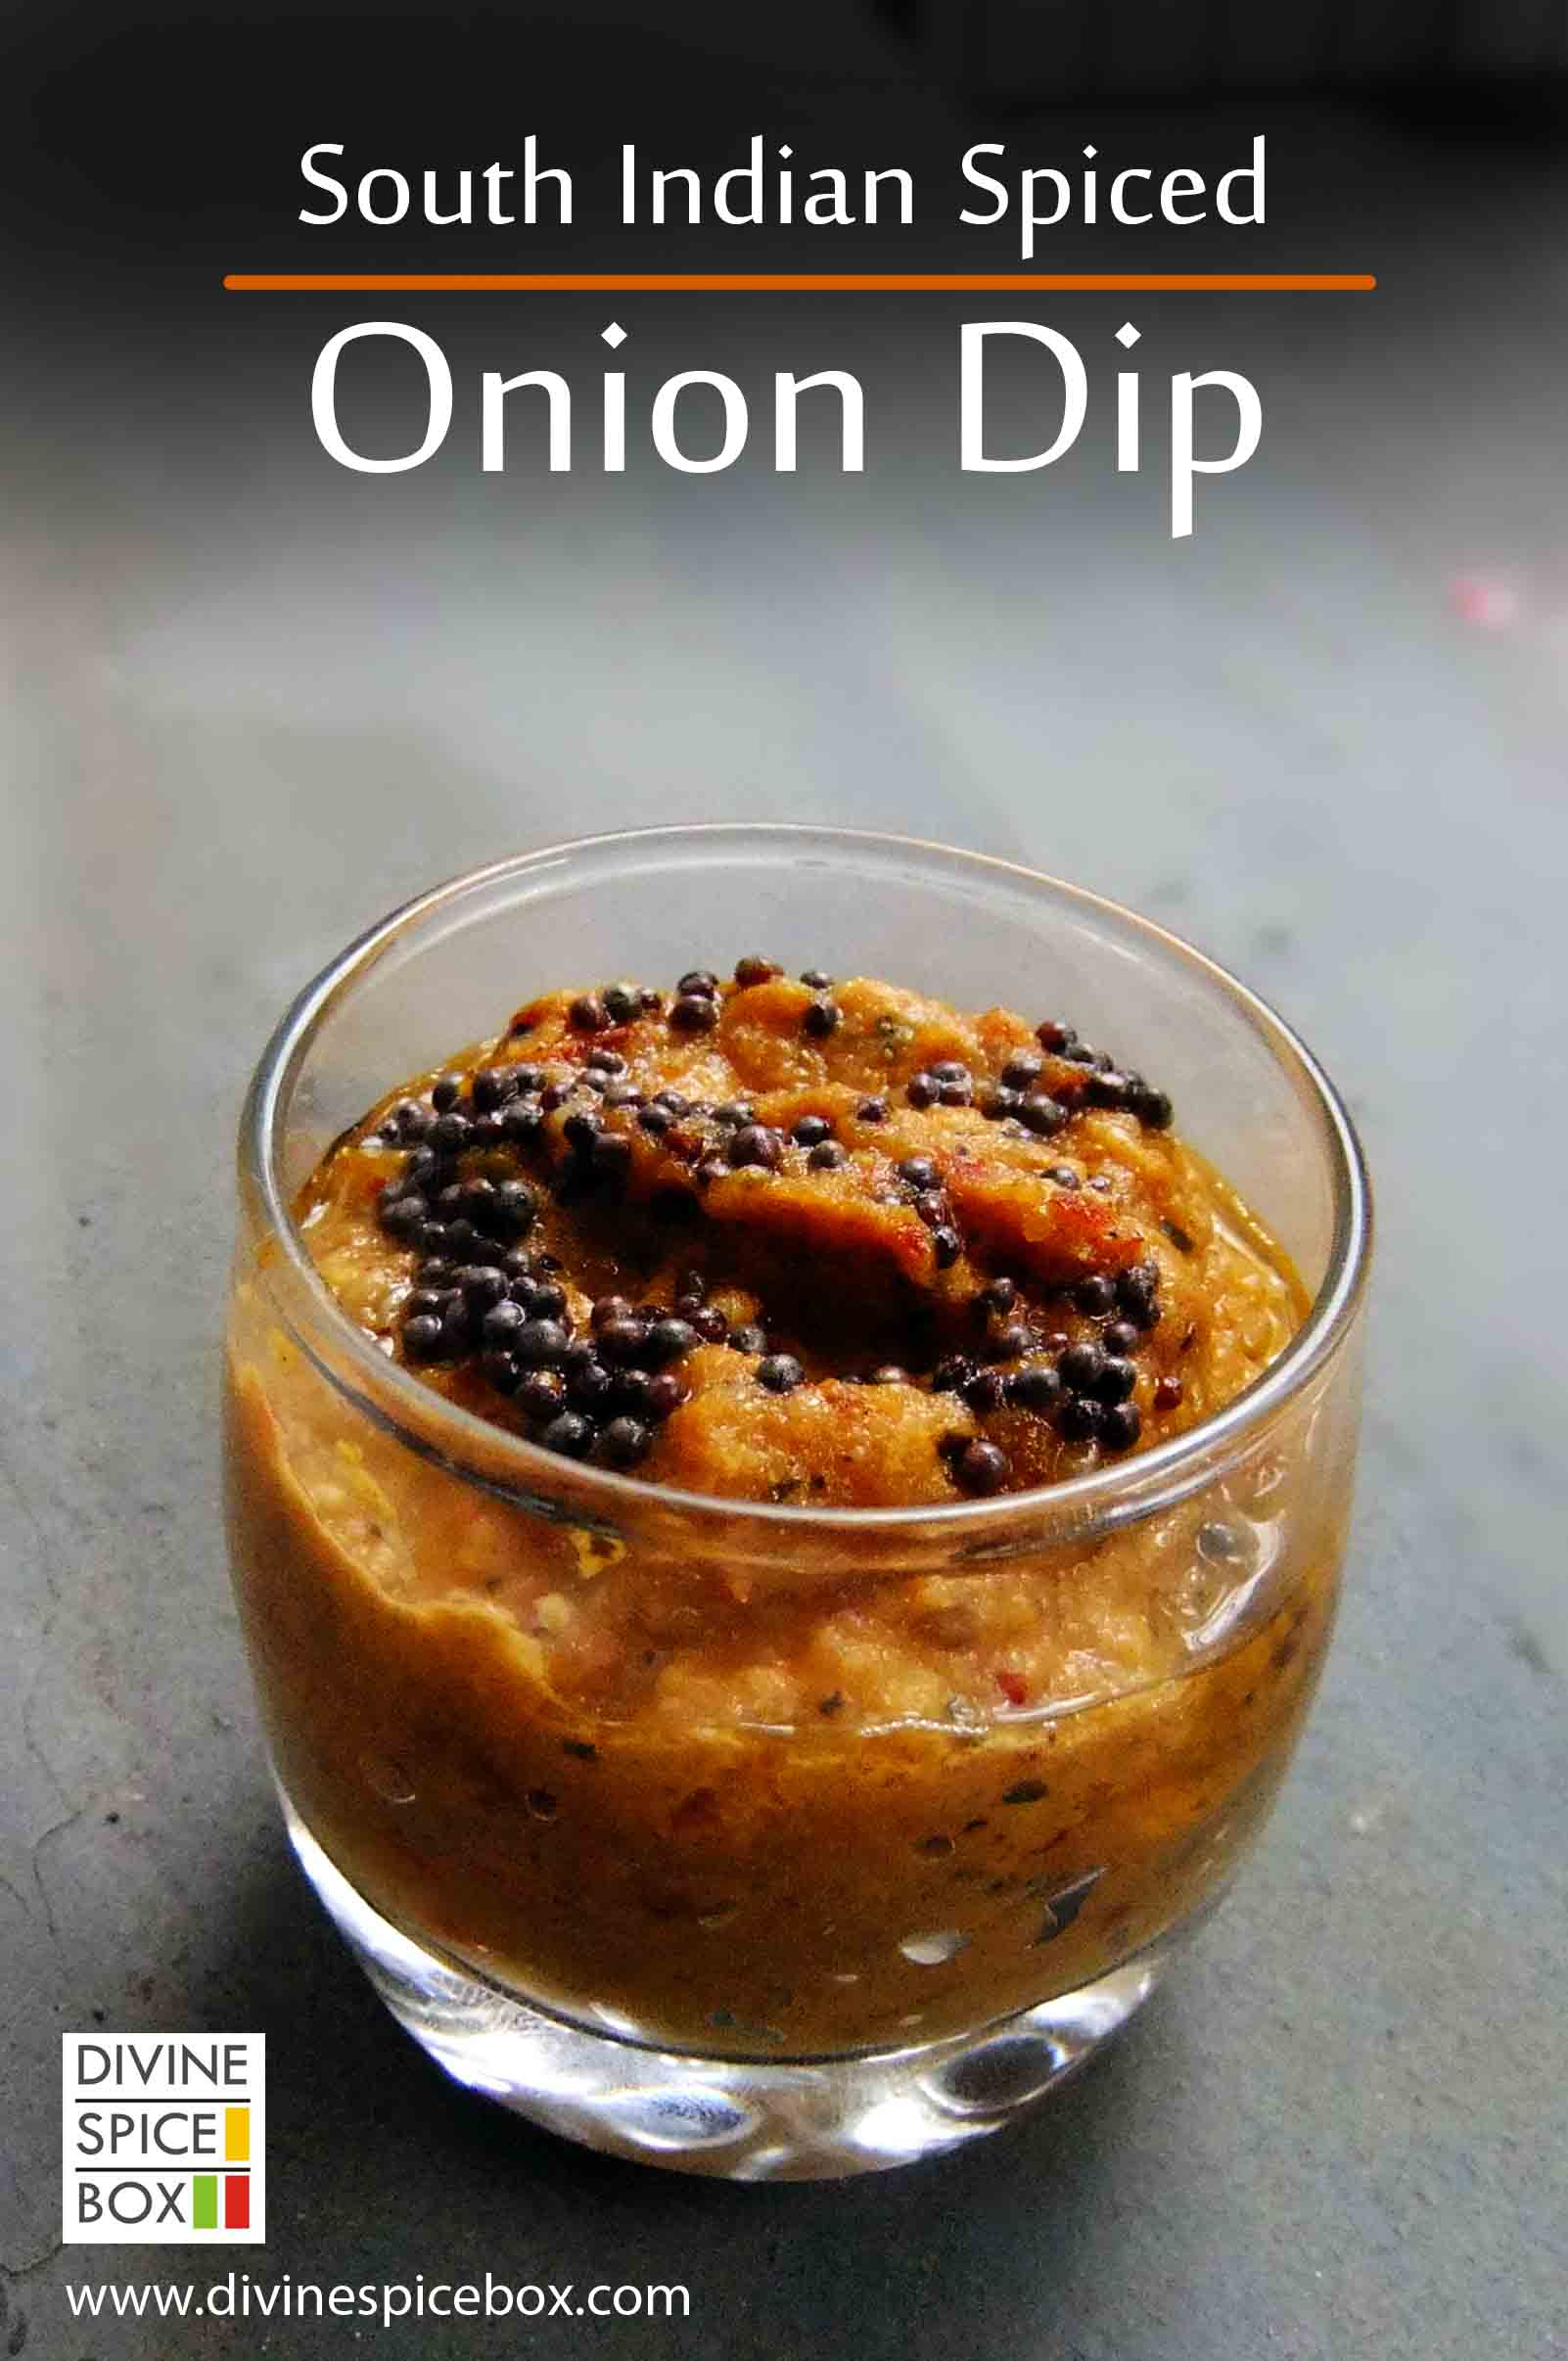 South indian spiced onion dip divine spice box onion dip copy indian cuisine is never complete without forumfinder Images